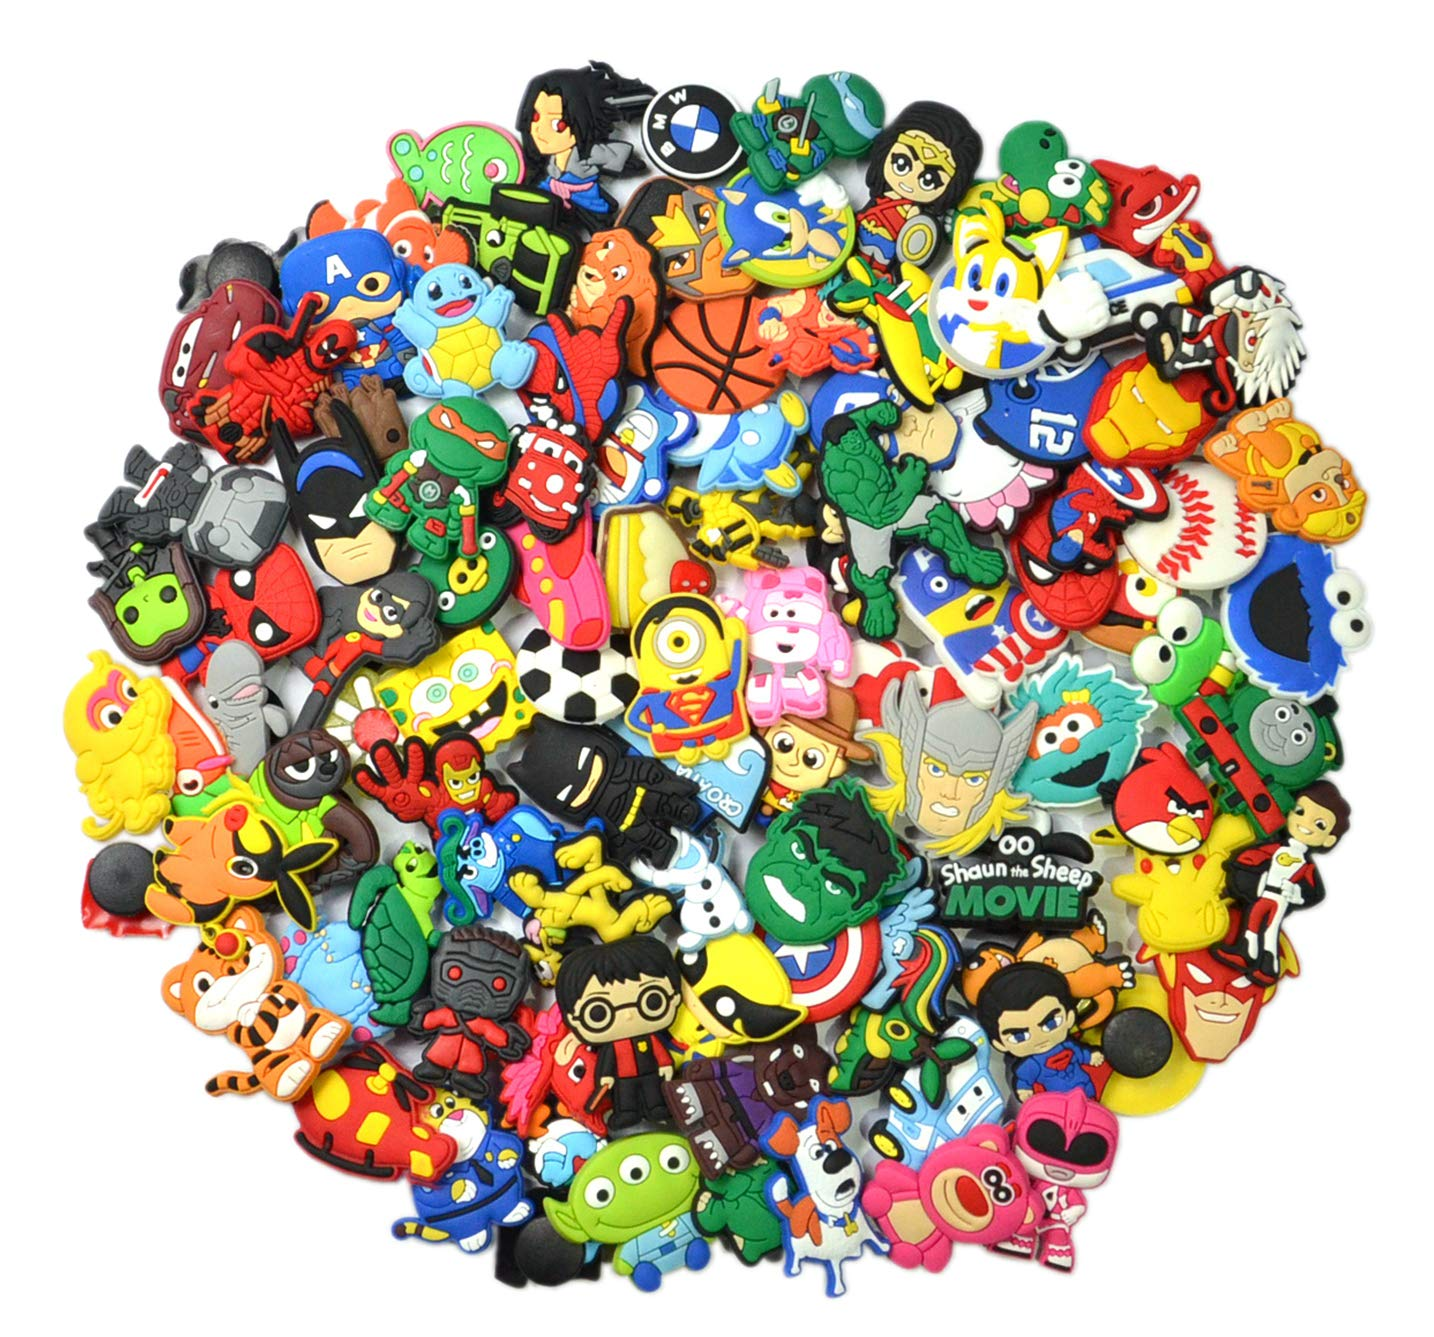 Lot of 100 PVC Different Shoe Charms for Croc & Jibbitz Bands Bracelet Wristband for Boys